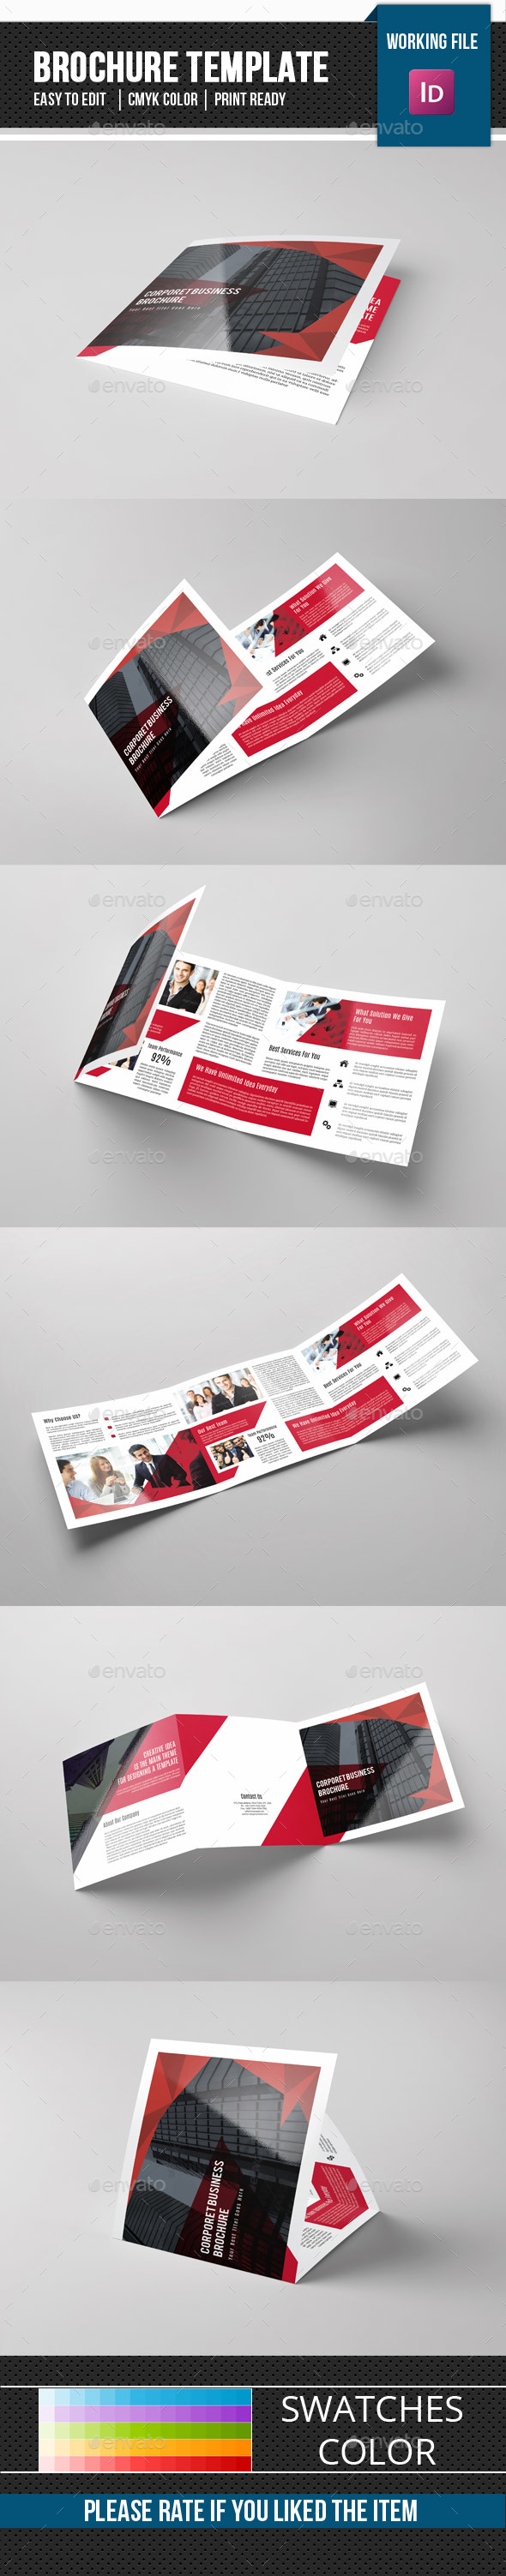 Corporate Square Trifold Brochure-V85 - Corporate Brochures